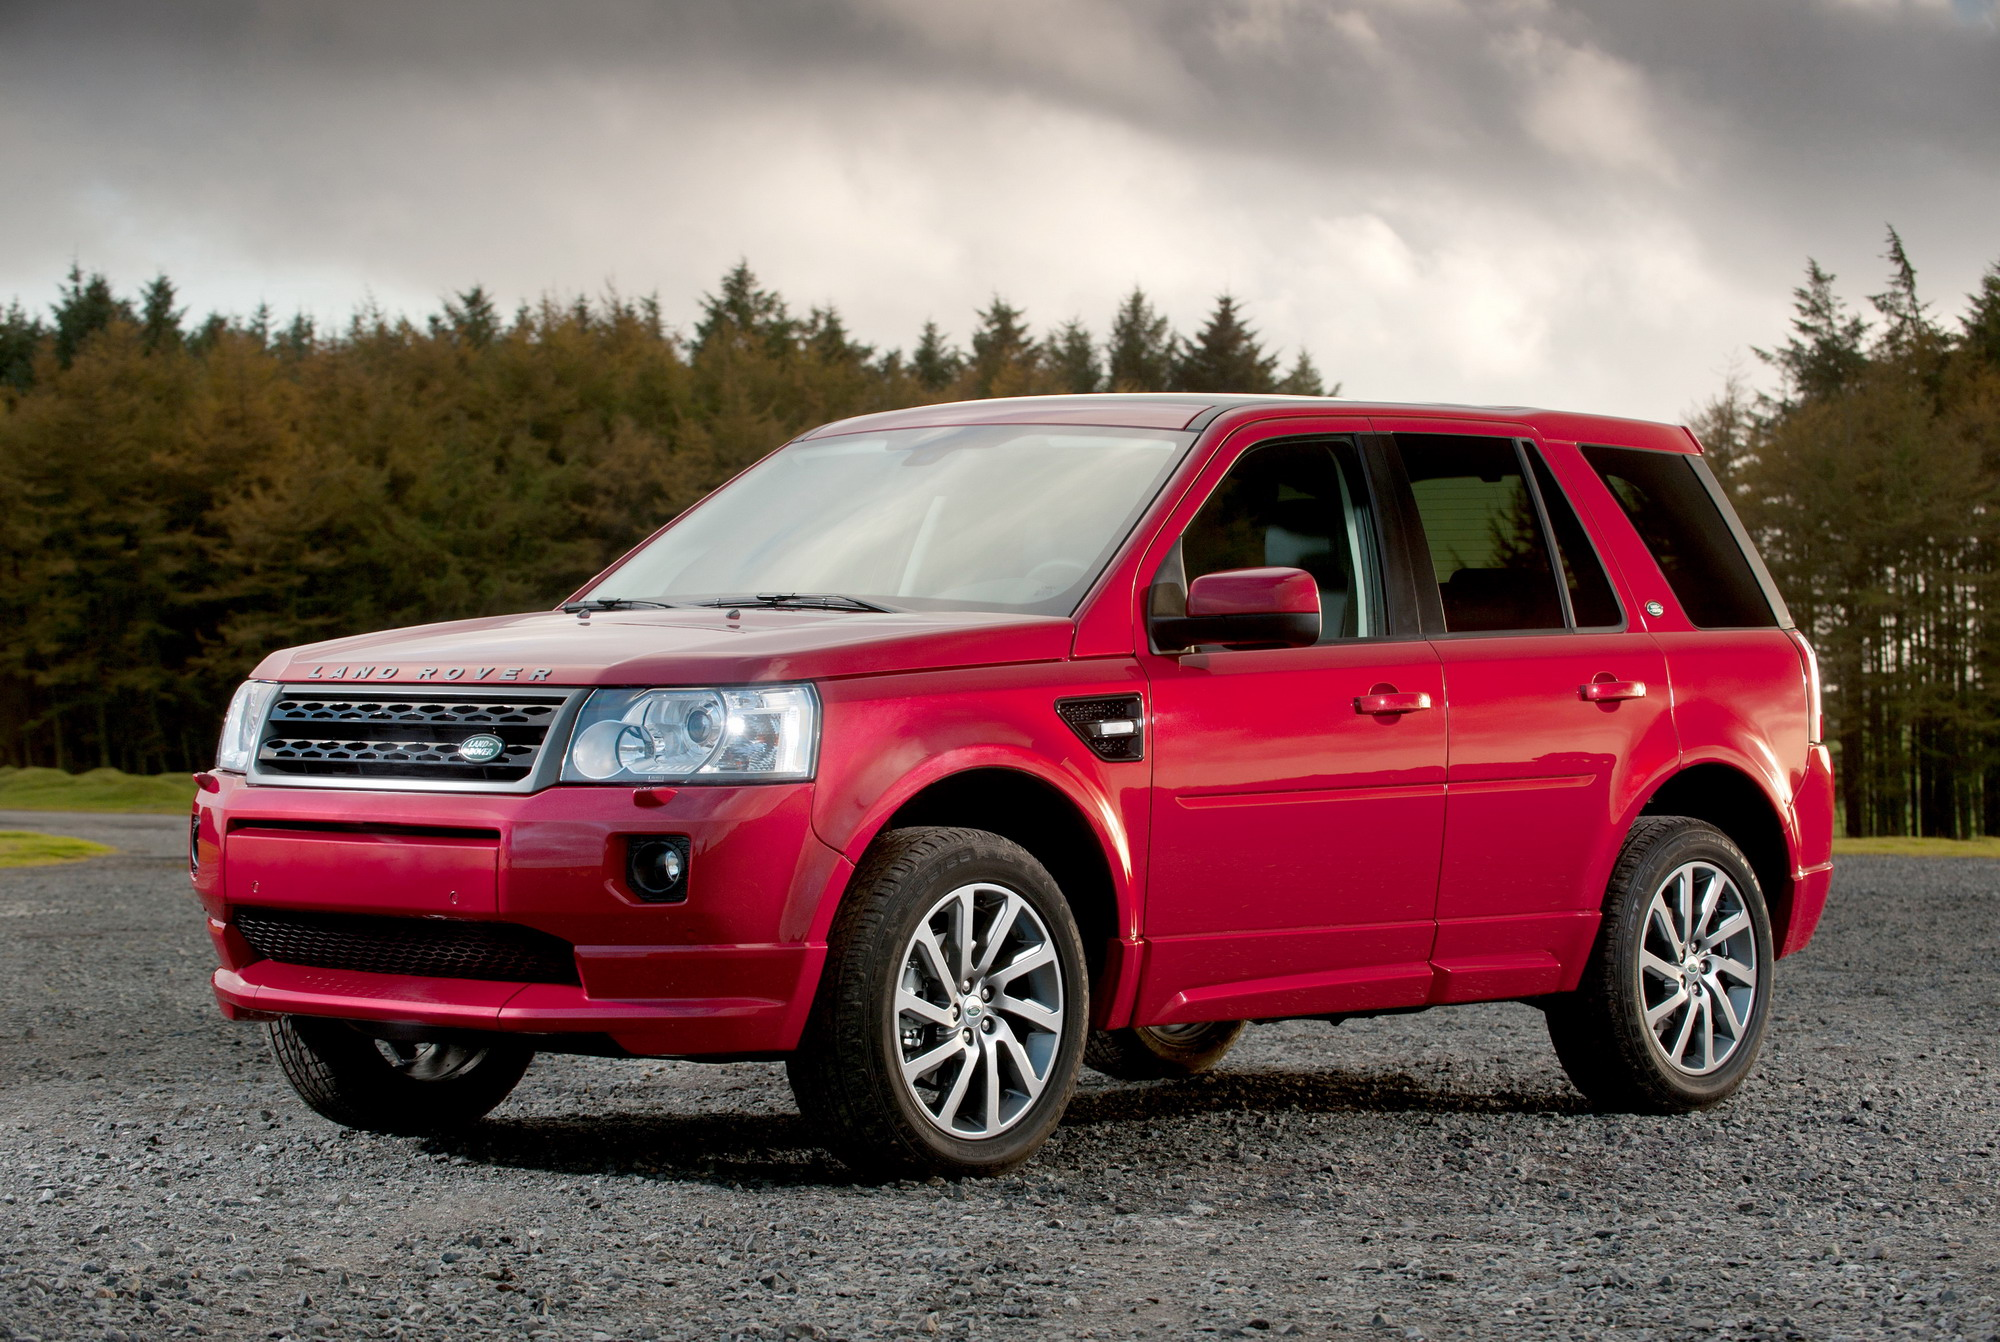 2011 Land Rover Freelander 2 SD4 Sport Limited Edition Review